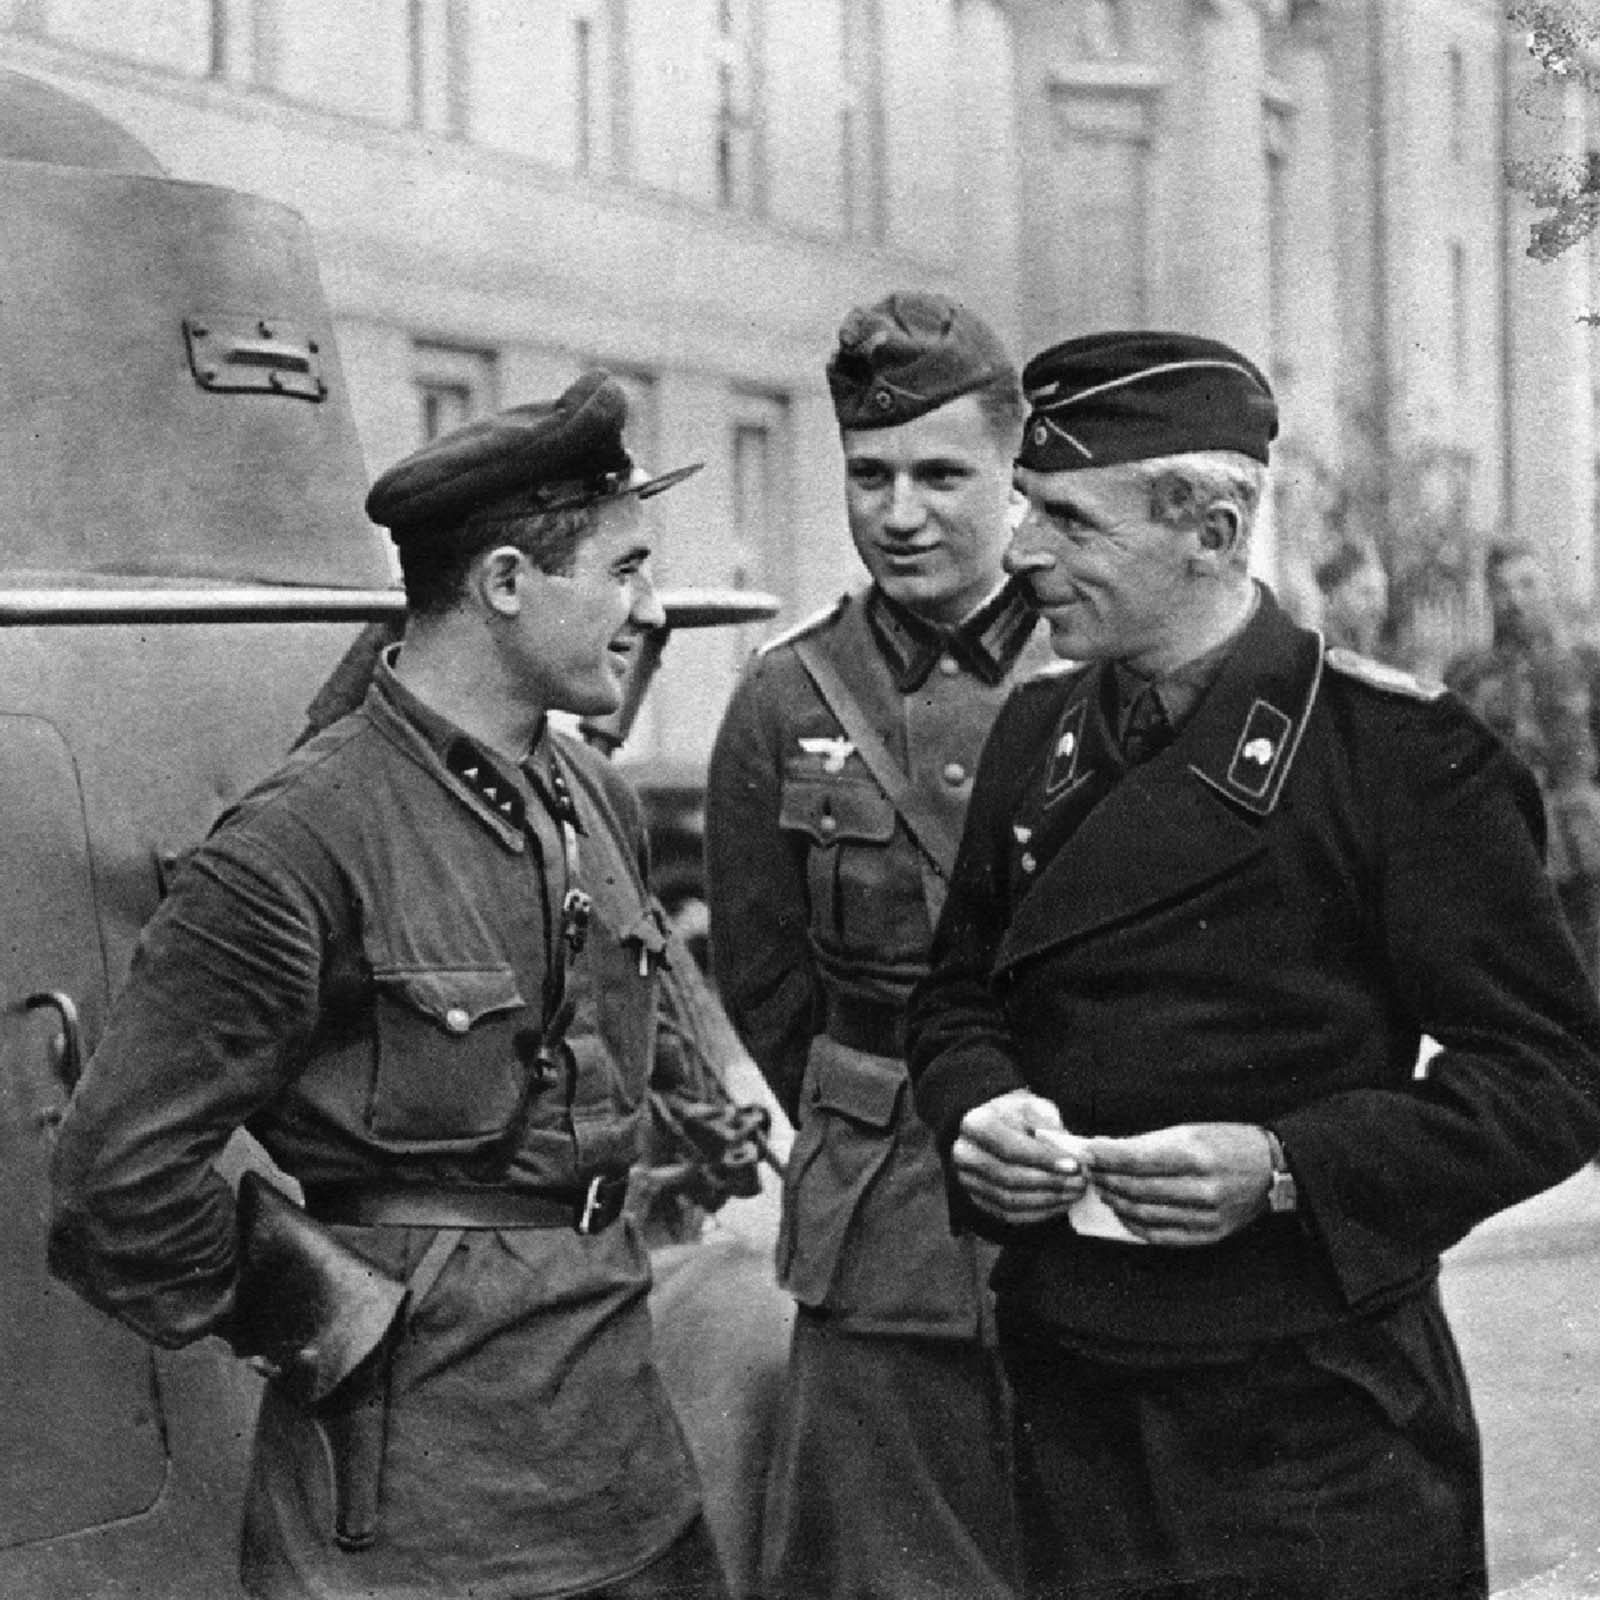 Soviet and German officials having a friendly conversation in the newly captured Polish city of Brest, September 1939.